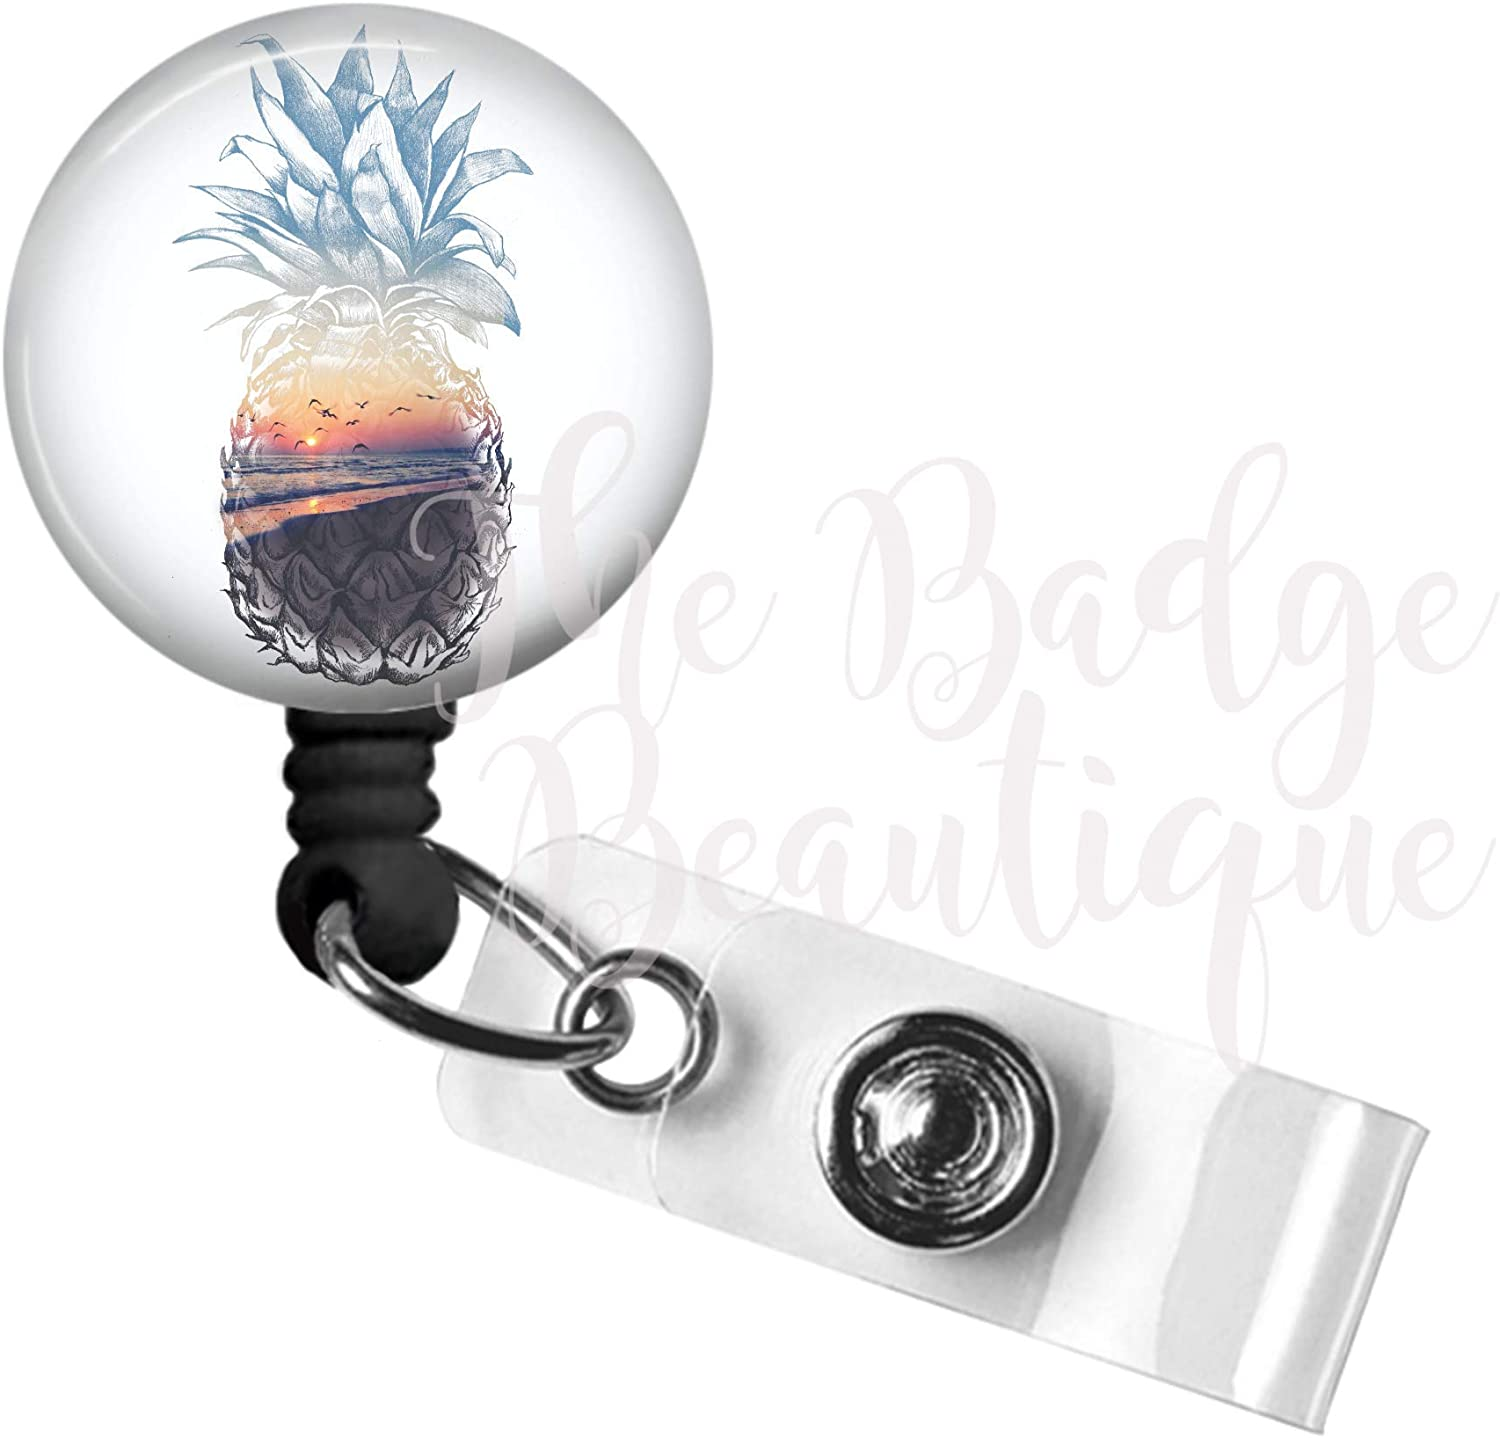 Badge Reel Holds Employee ID Tag Pineapple Sunset Pineapple Retractable ID Badge Pull with Durable Swivel Alligator Clip 34in Nylon Cord for Nurse RN MD PA Teacher Medical Staff